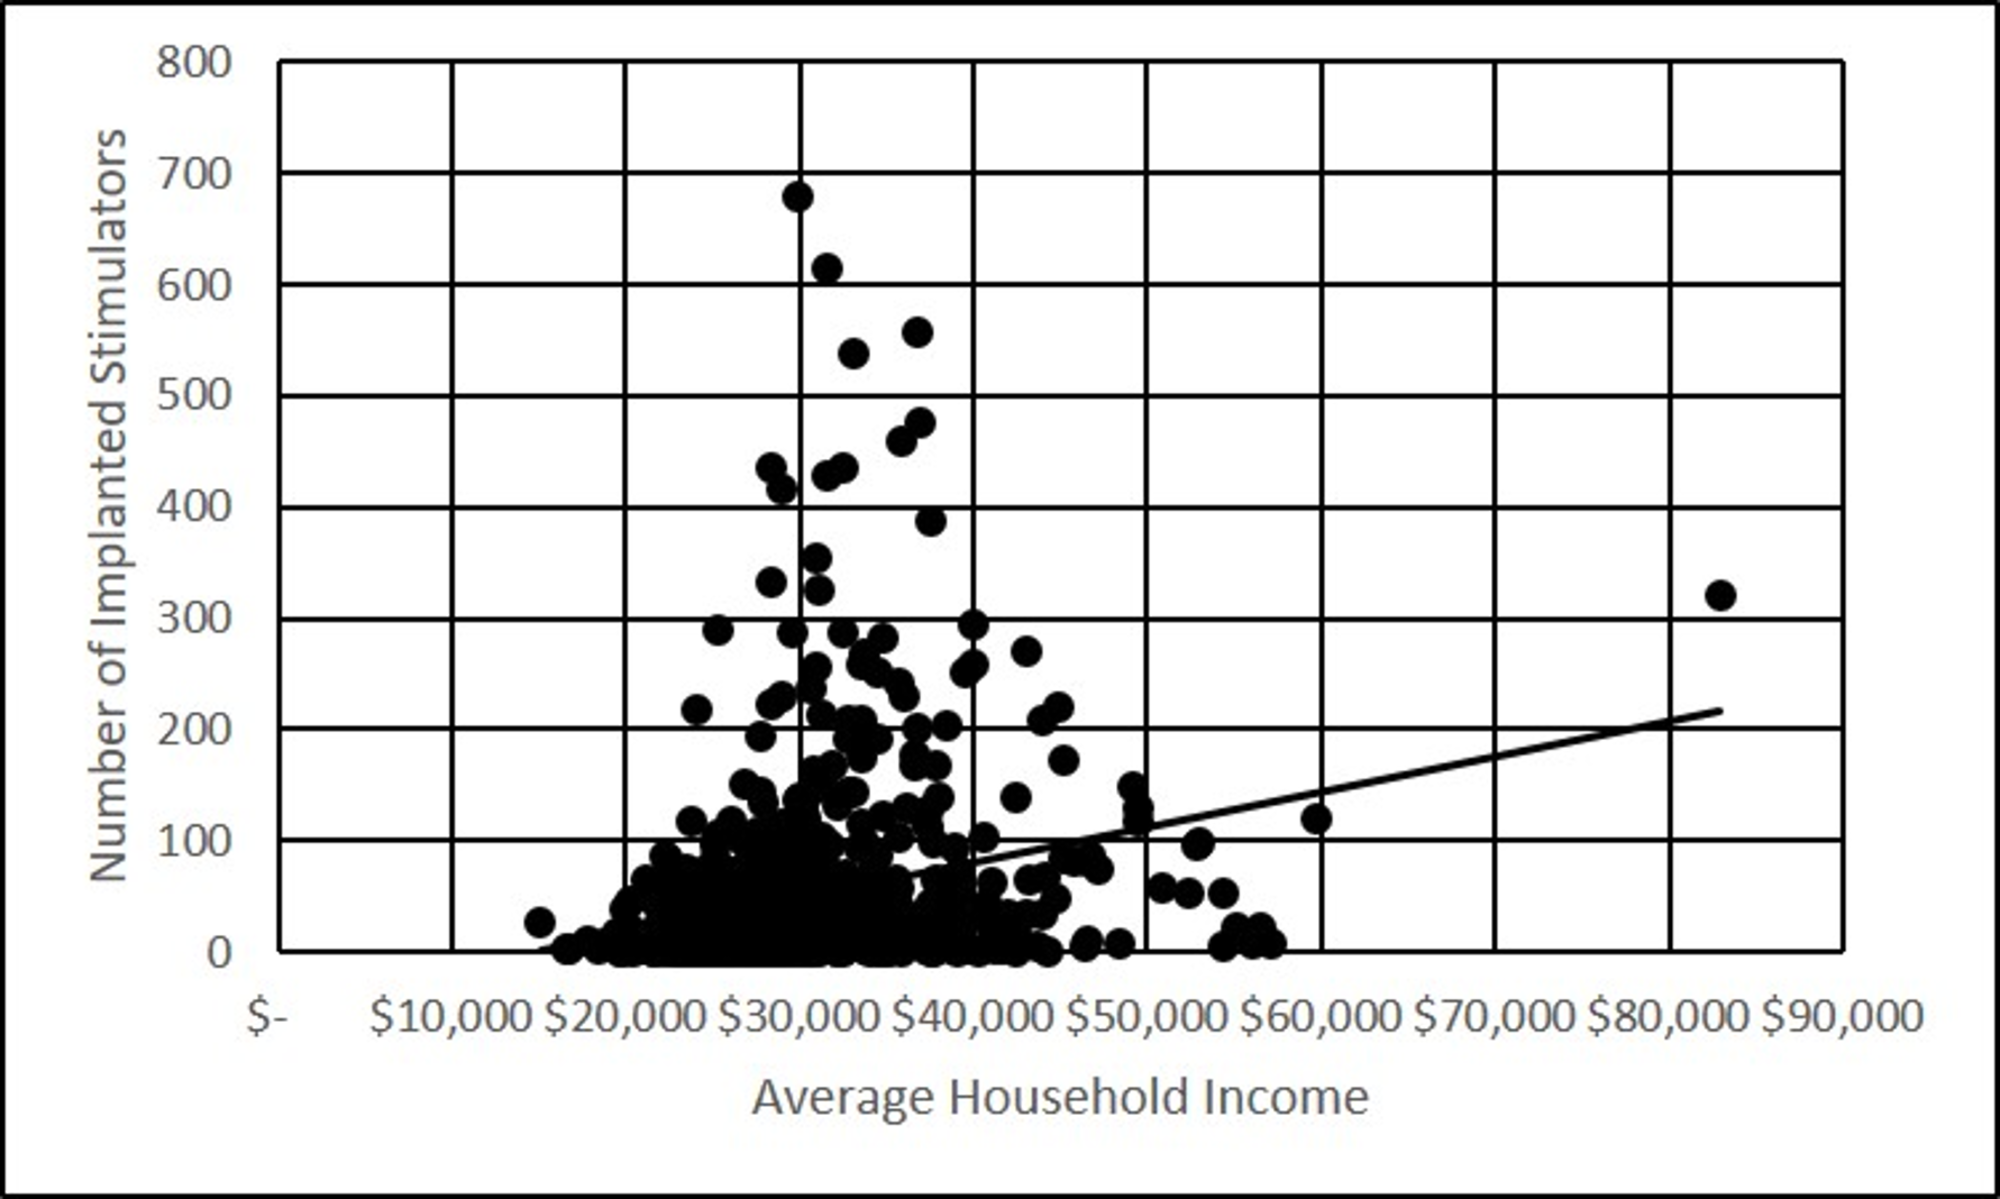 Number-of-implanted-stimulators-per-county,-versus-the-average-household-income